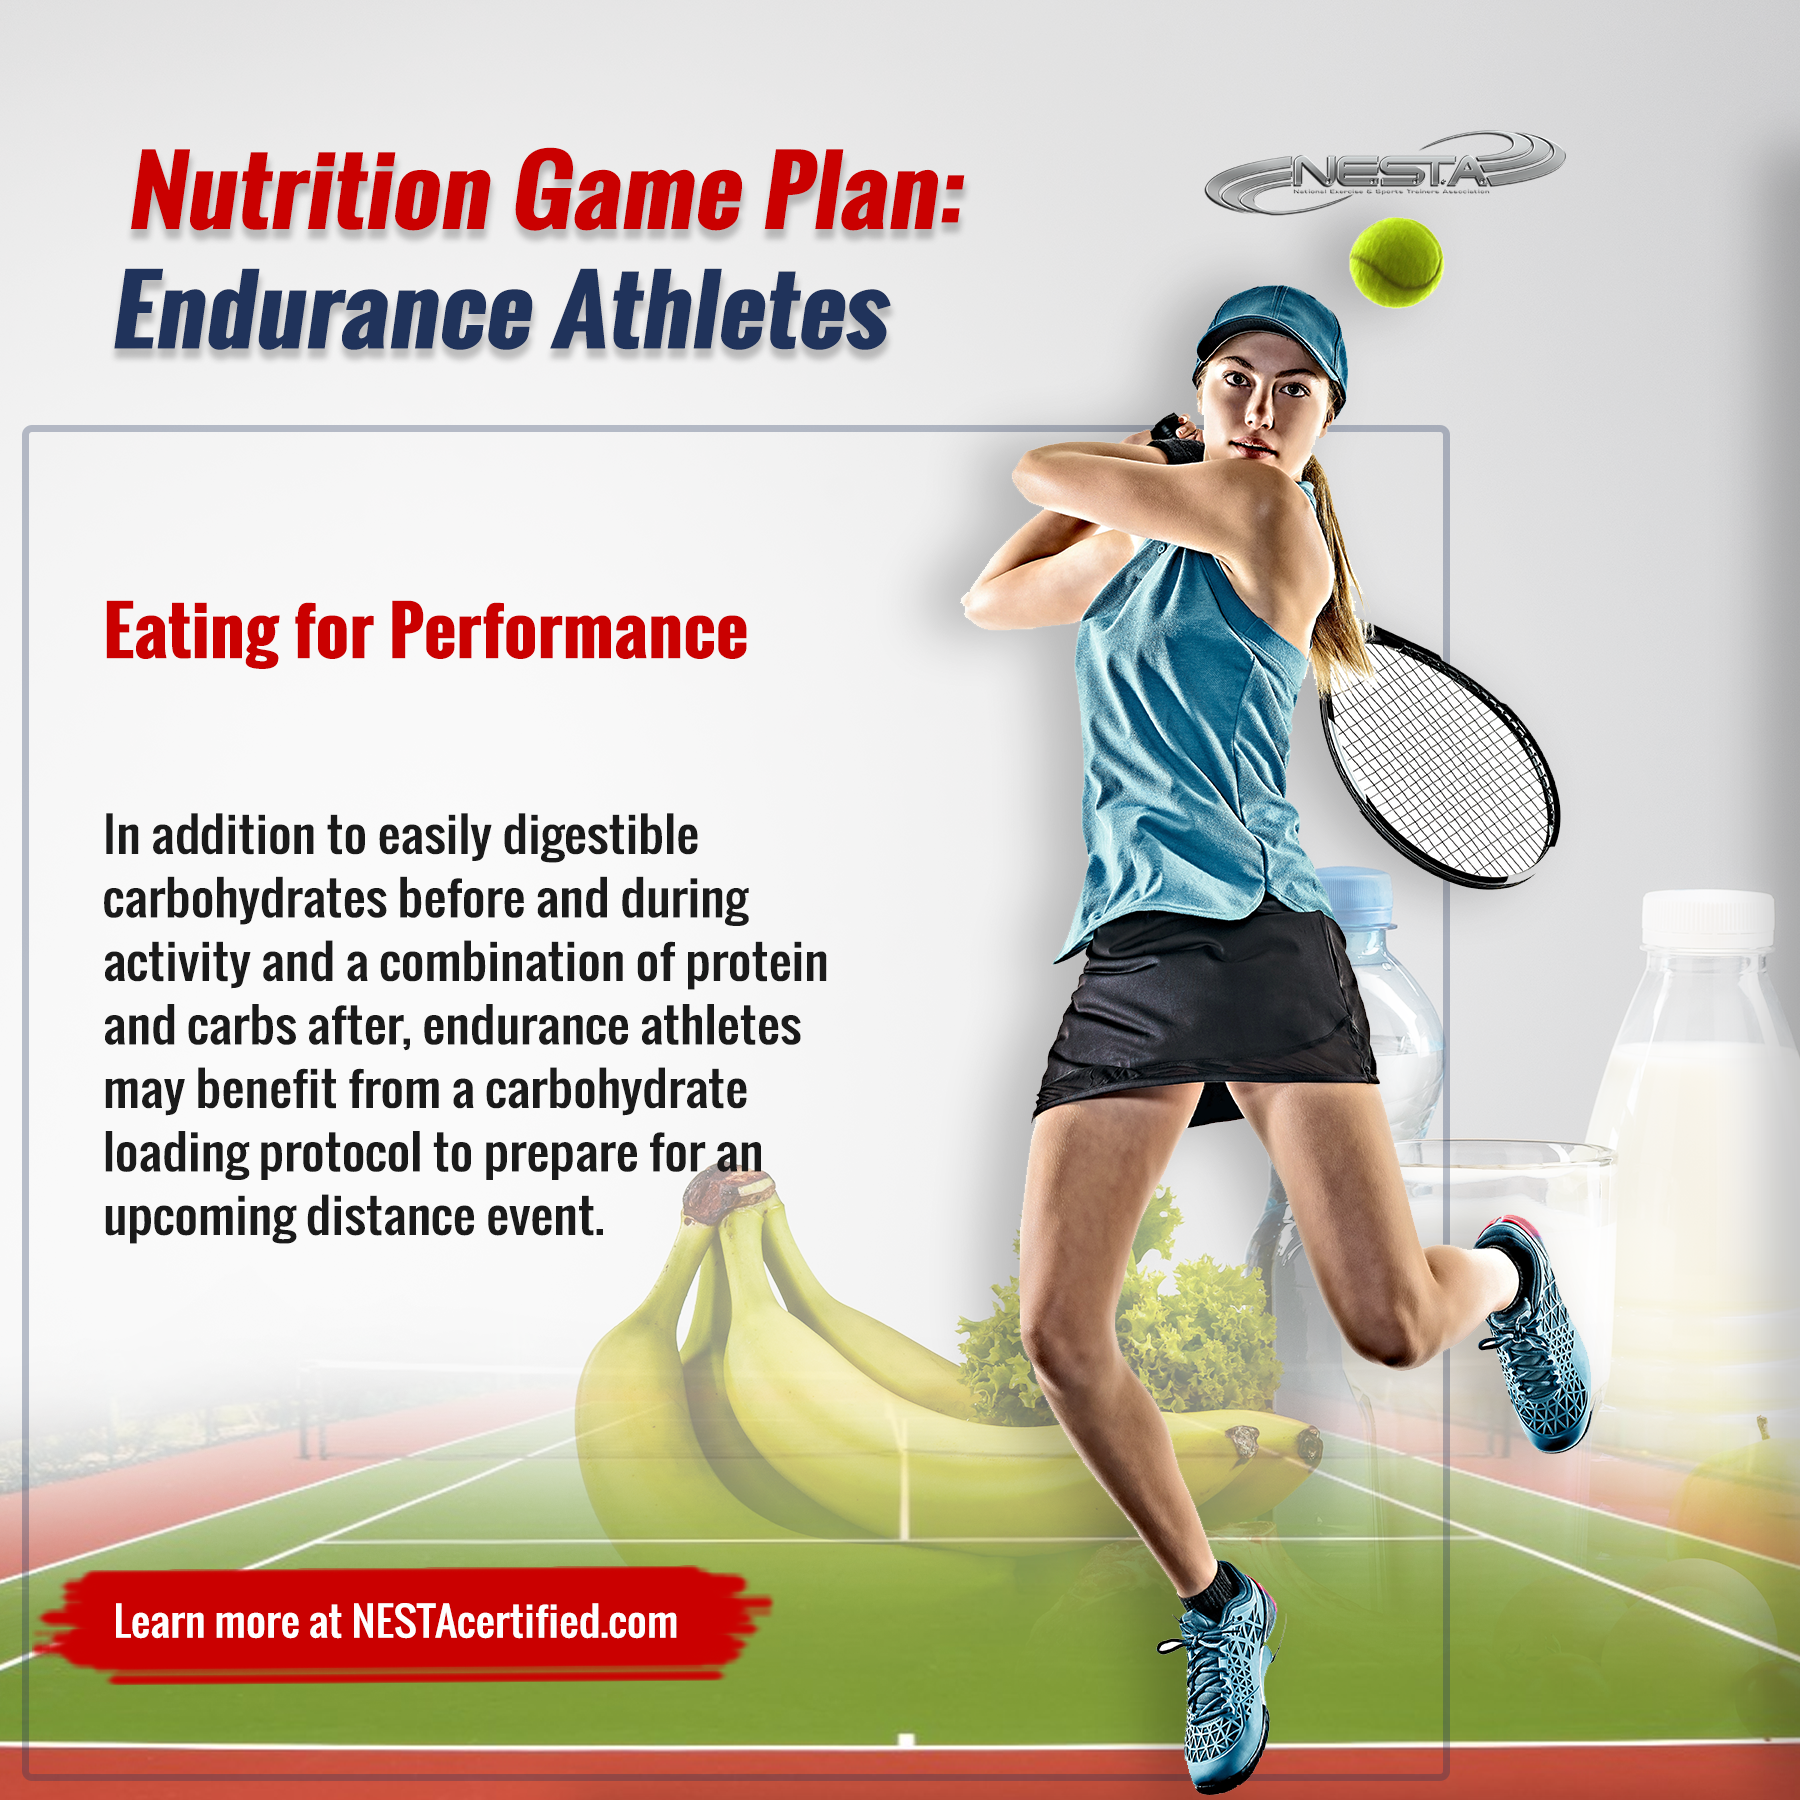 Eating for Performance #athletenutrition Eating for Performance #athletenutrition